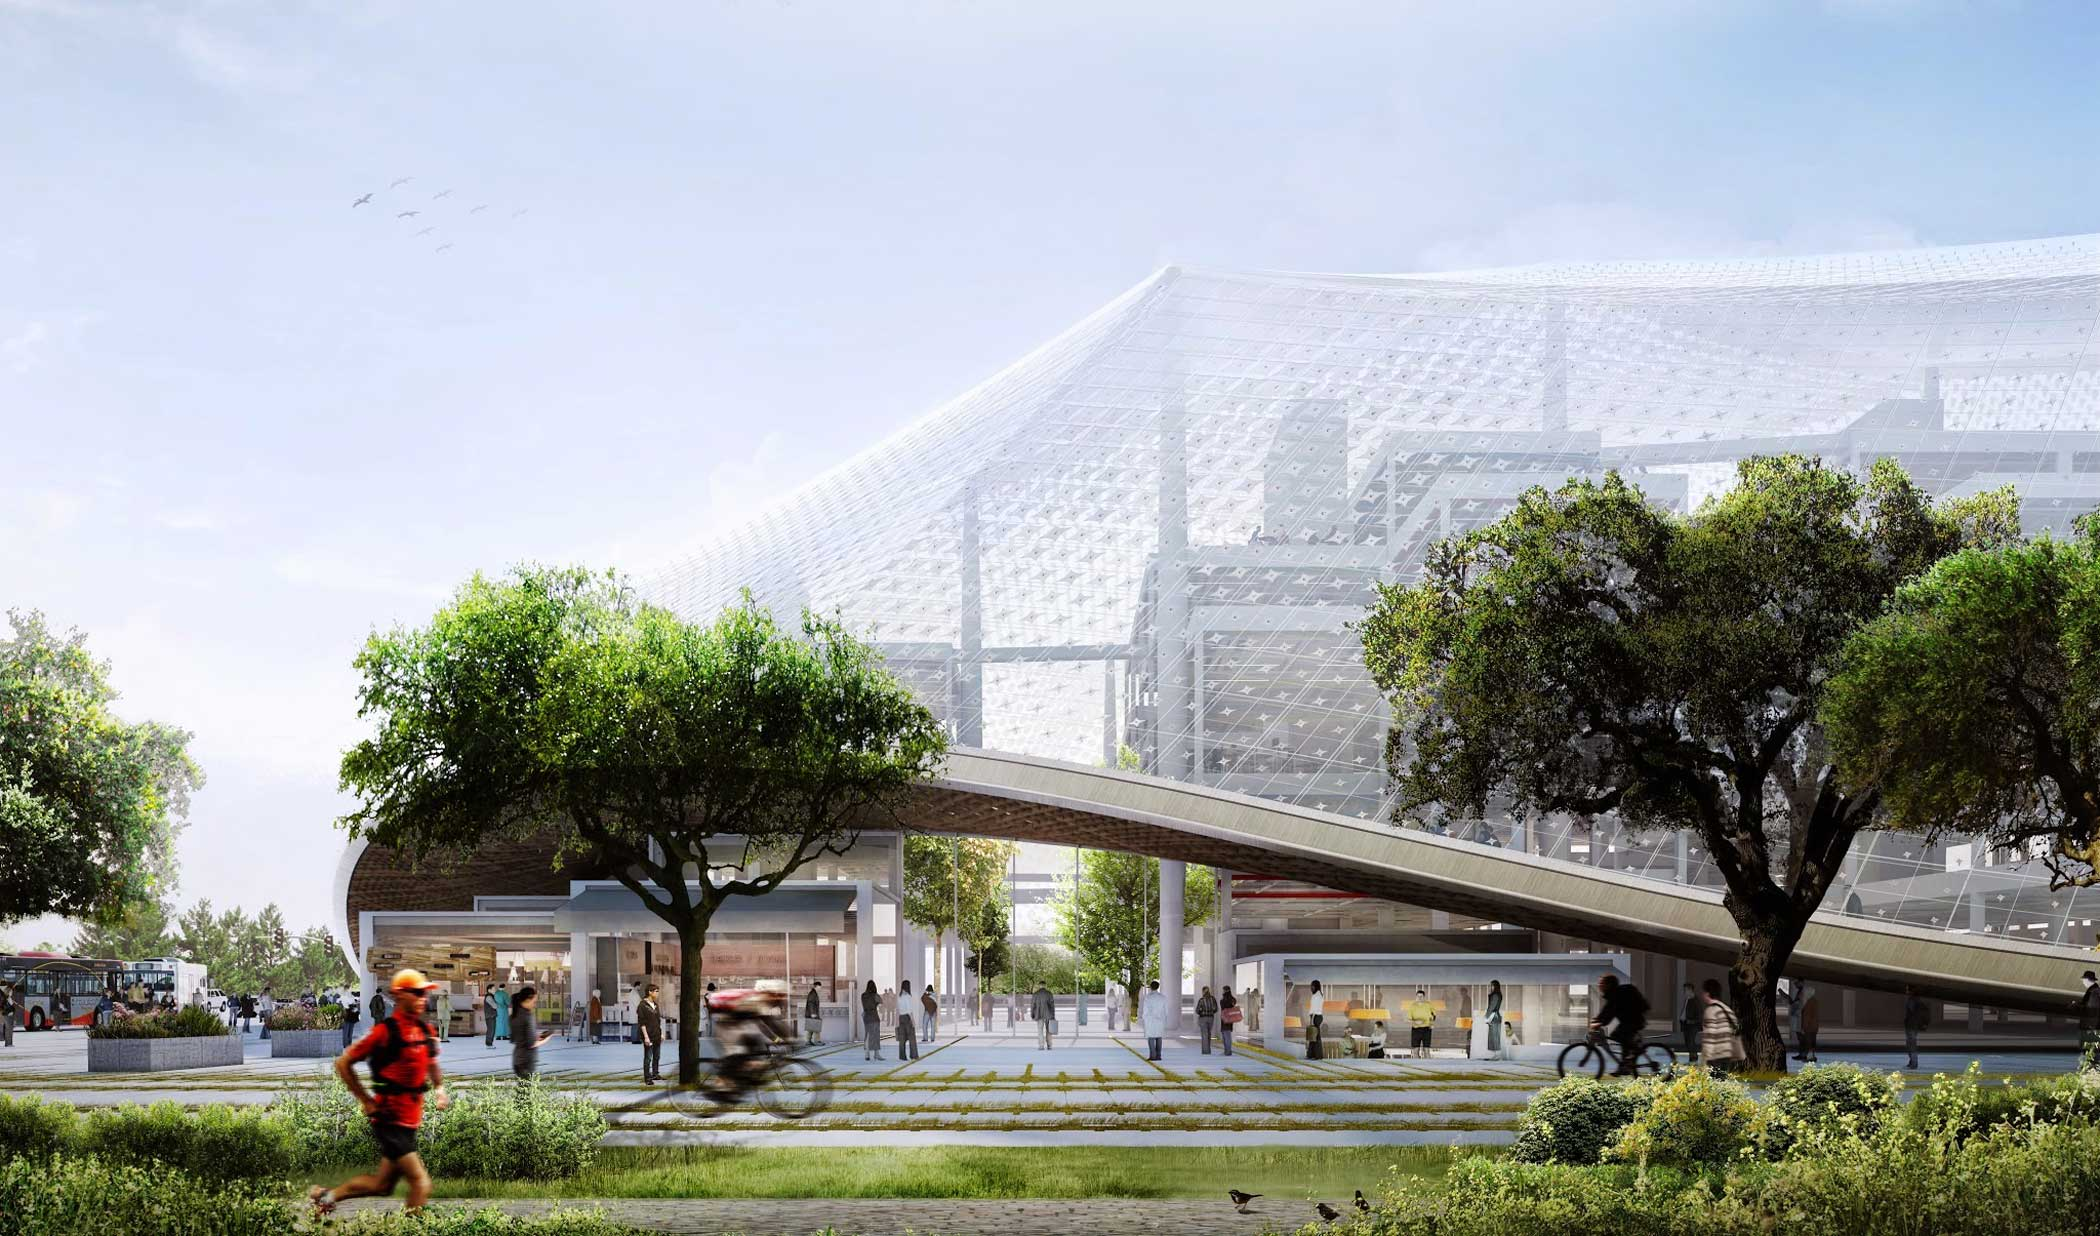 This rendering shows the northwest corner of the proposed Charleston South building.                                                                      Large, translucent enclosures blur the boundaries between inside and out. These canopies regulate climate, pollution, and sound, while freeing spaces from traditional architectural limitations like walls, windows and roofs.                                                                      Cafes and local shops on the lower levels open into interior open walkways under the canopy.